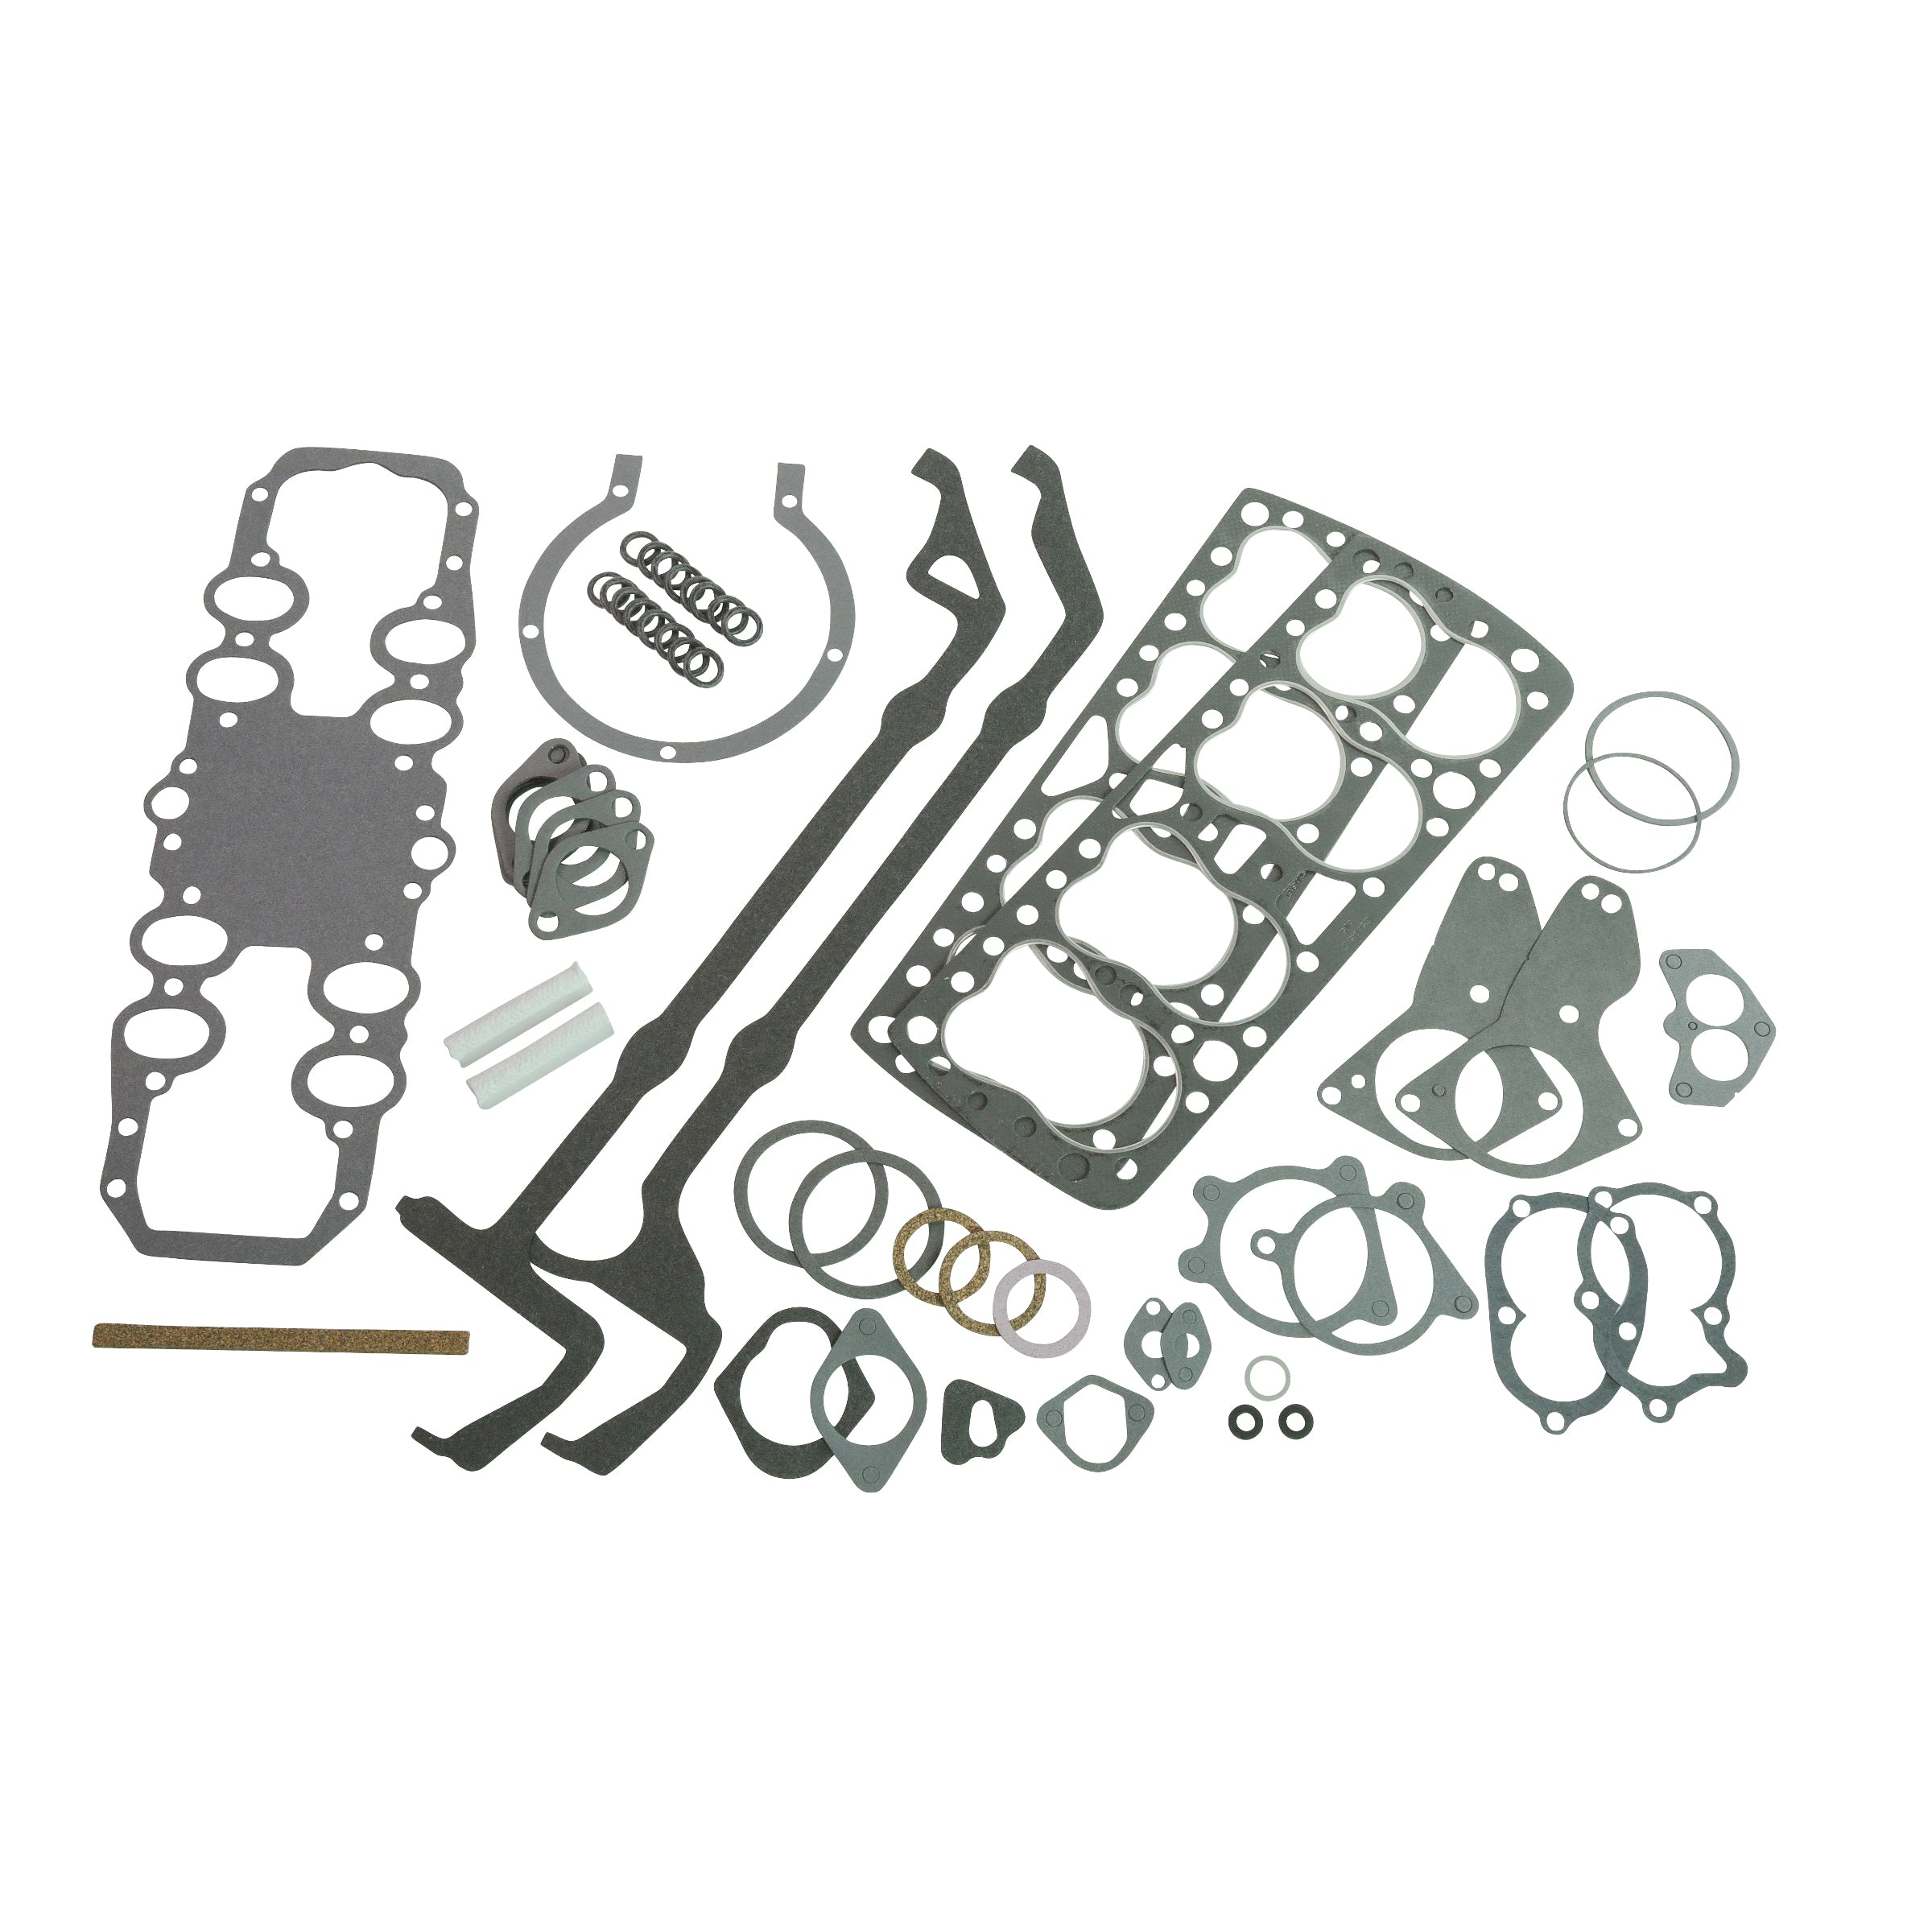 Engine Gasket Set (Graphite) • 1938-47 Ford 24 Stud 85 HP